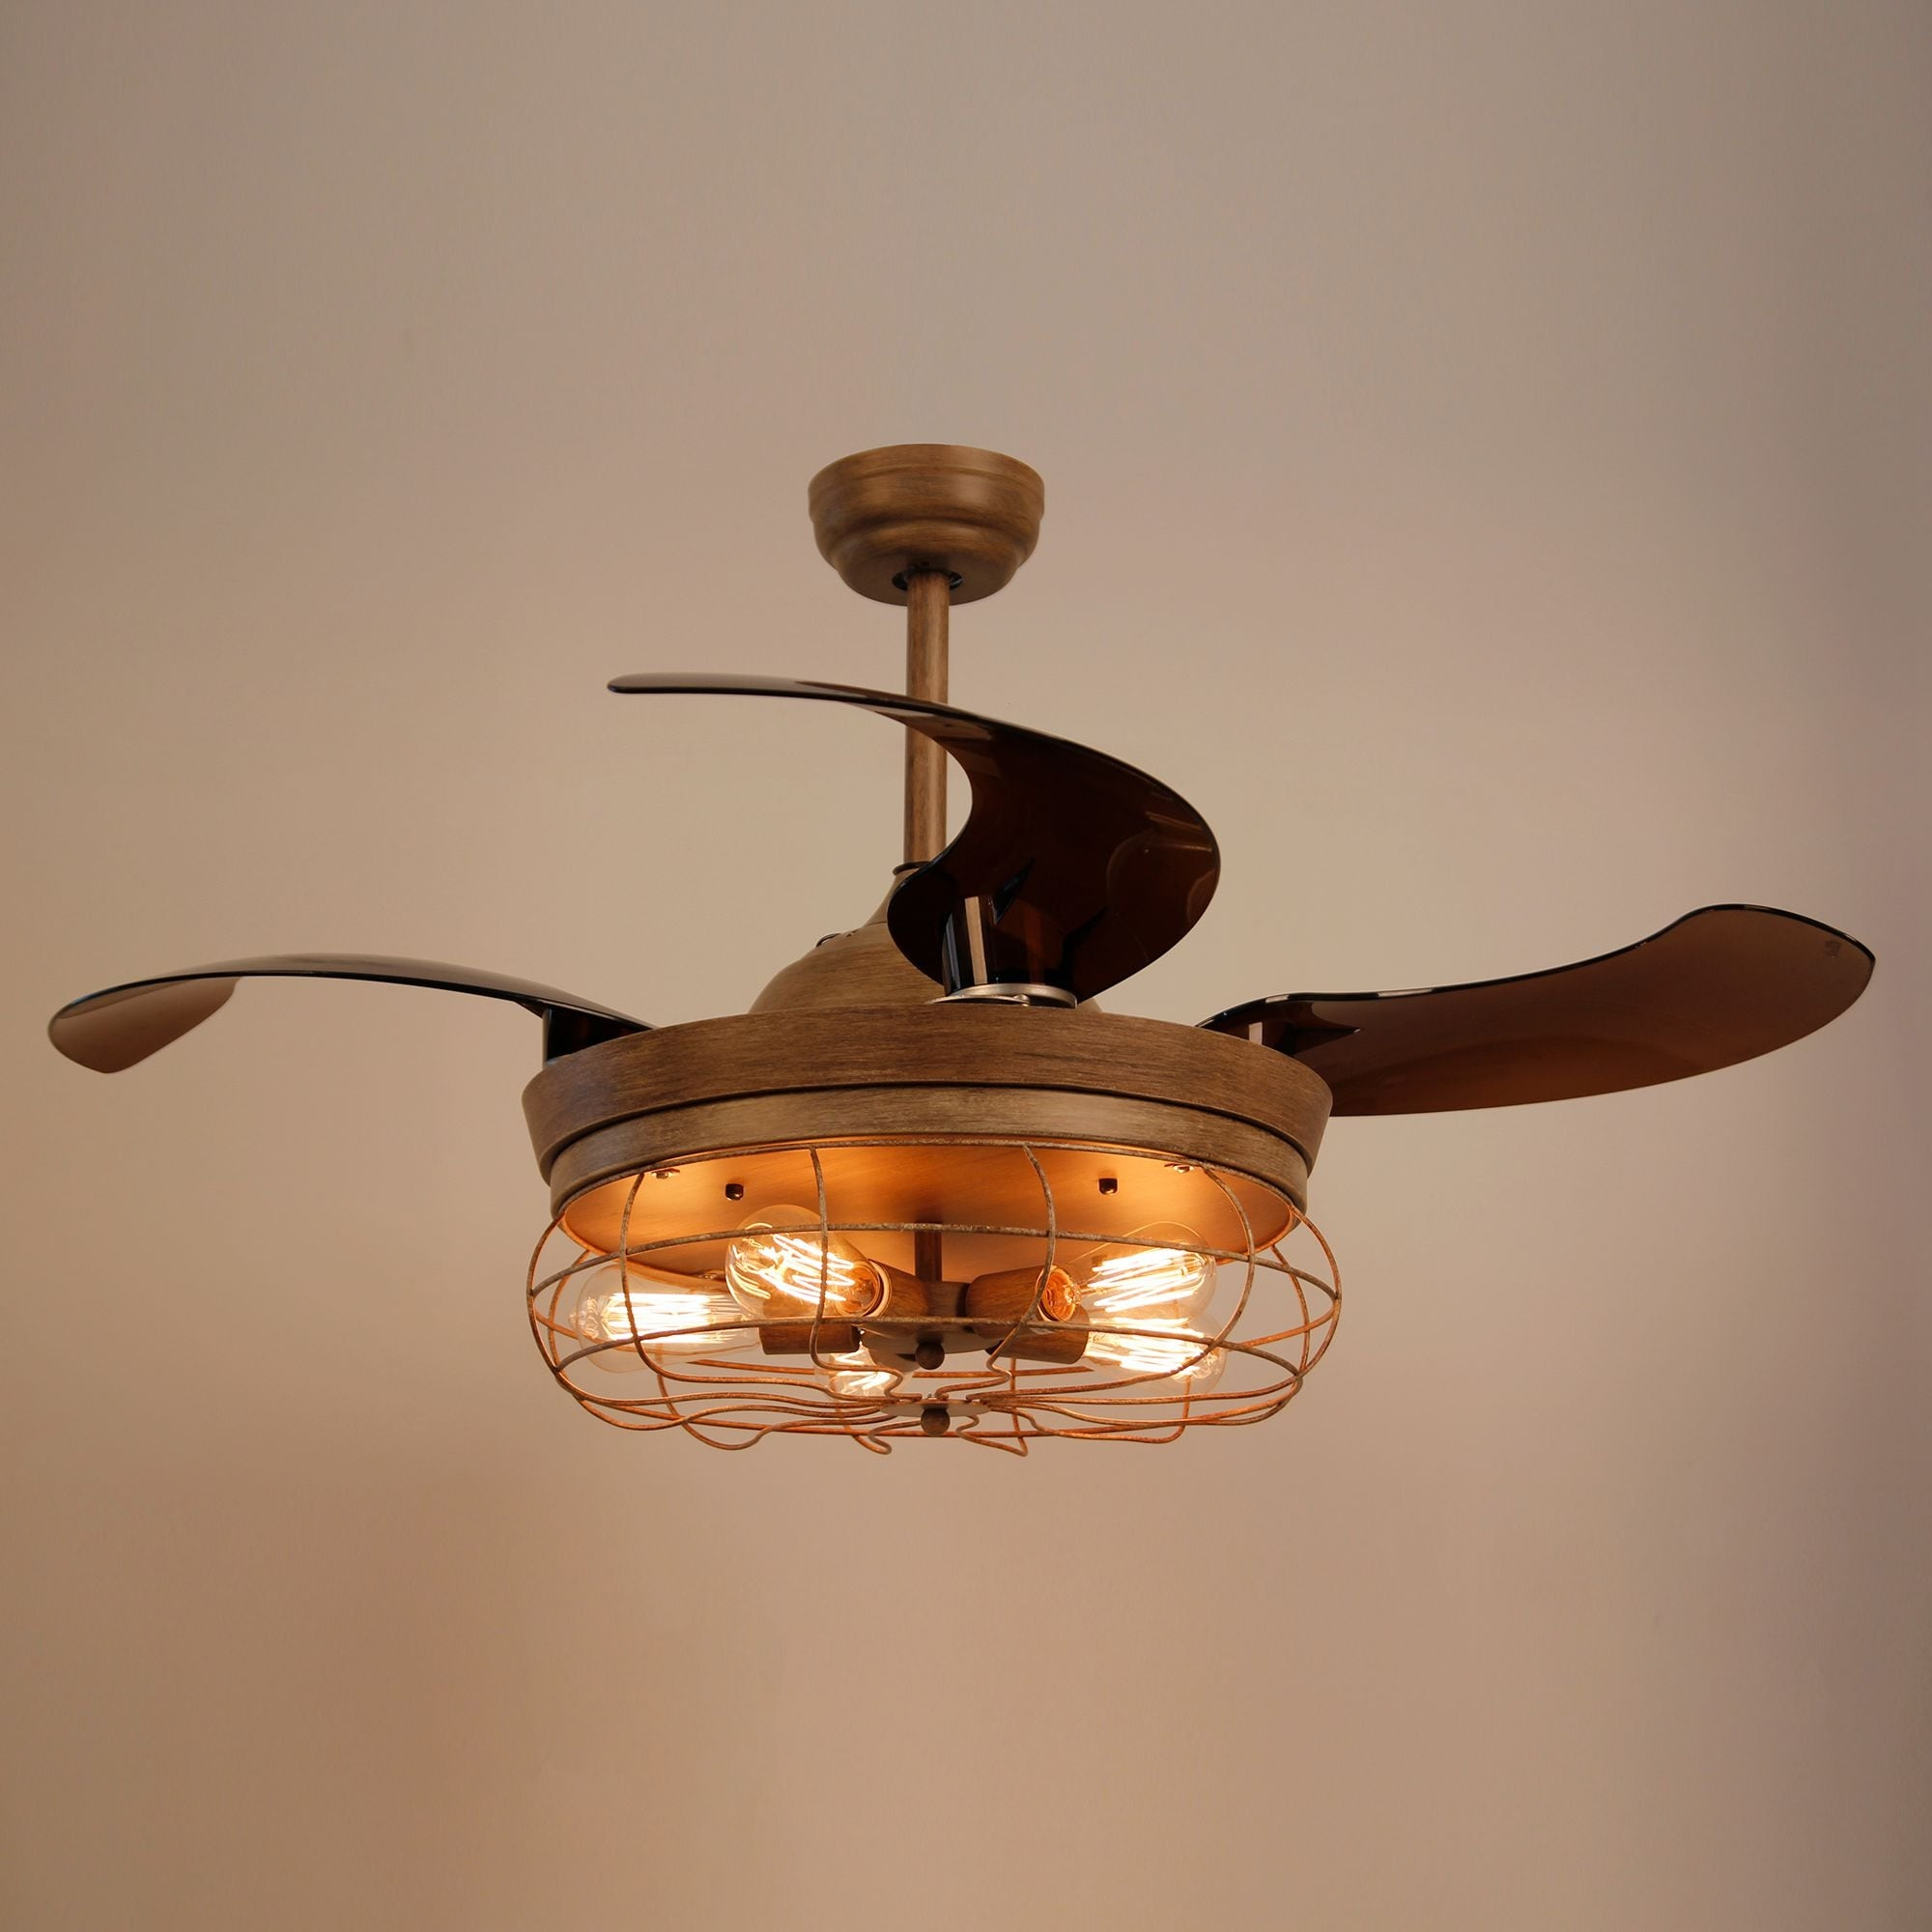 Rustic 42 Inch Oak Foldable 4 Blades Cage Ceiling Fan With 5 Lights Free Shipping Today 18915982